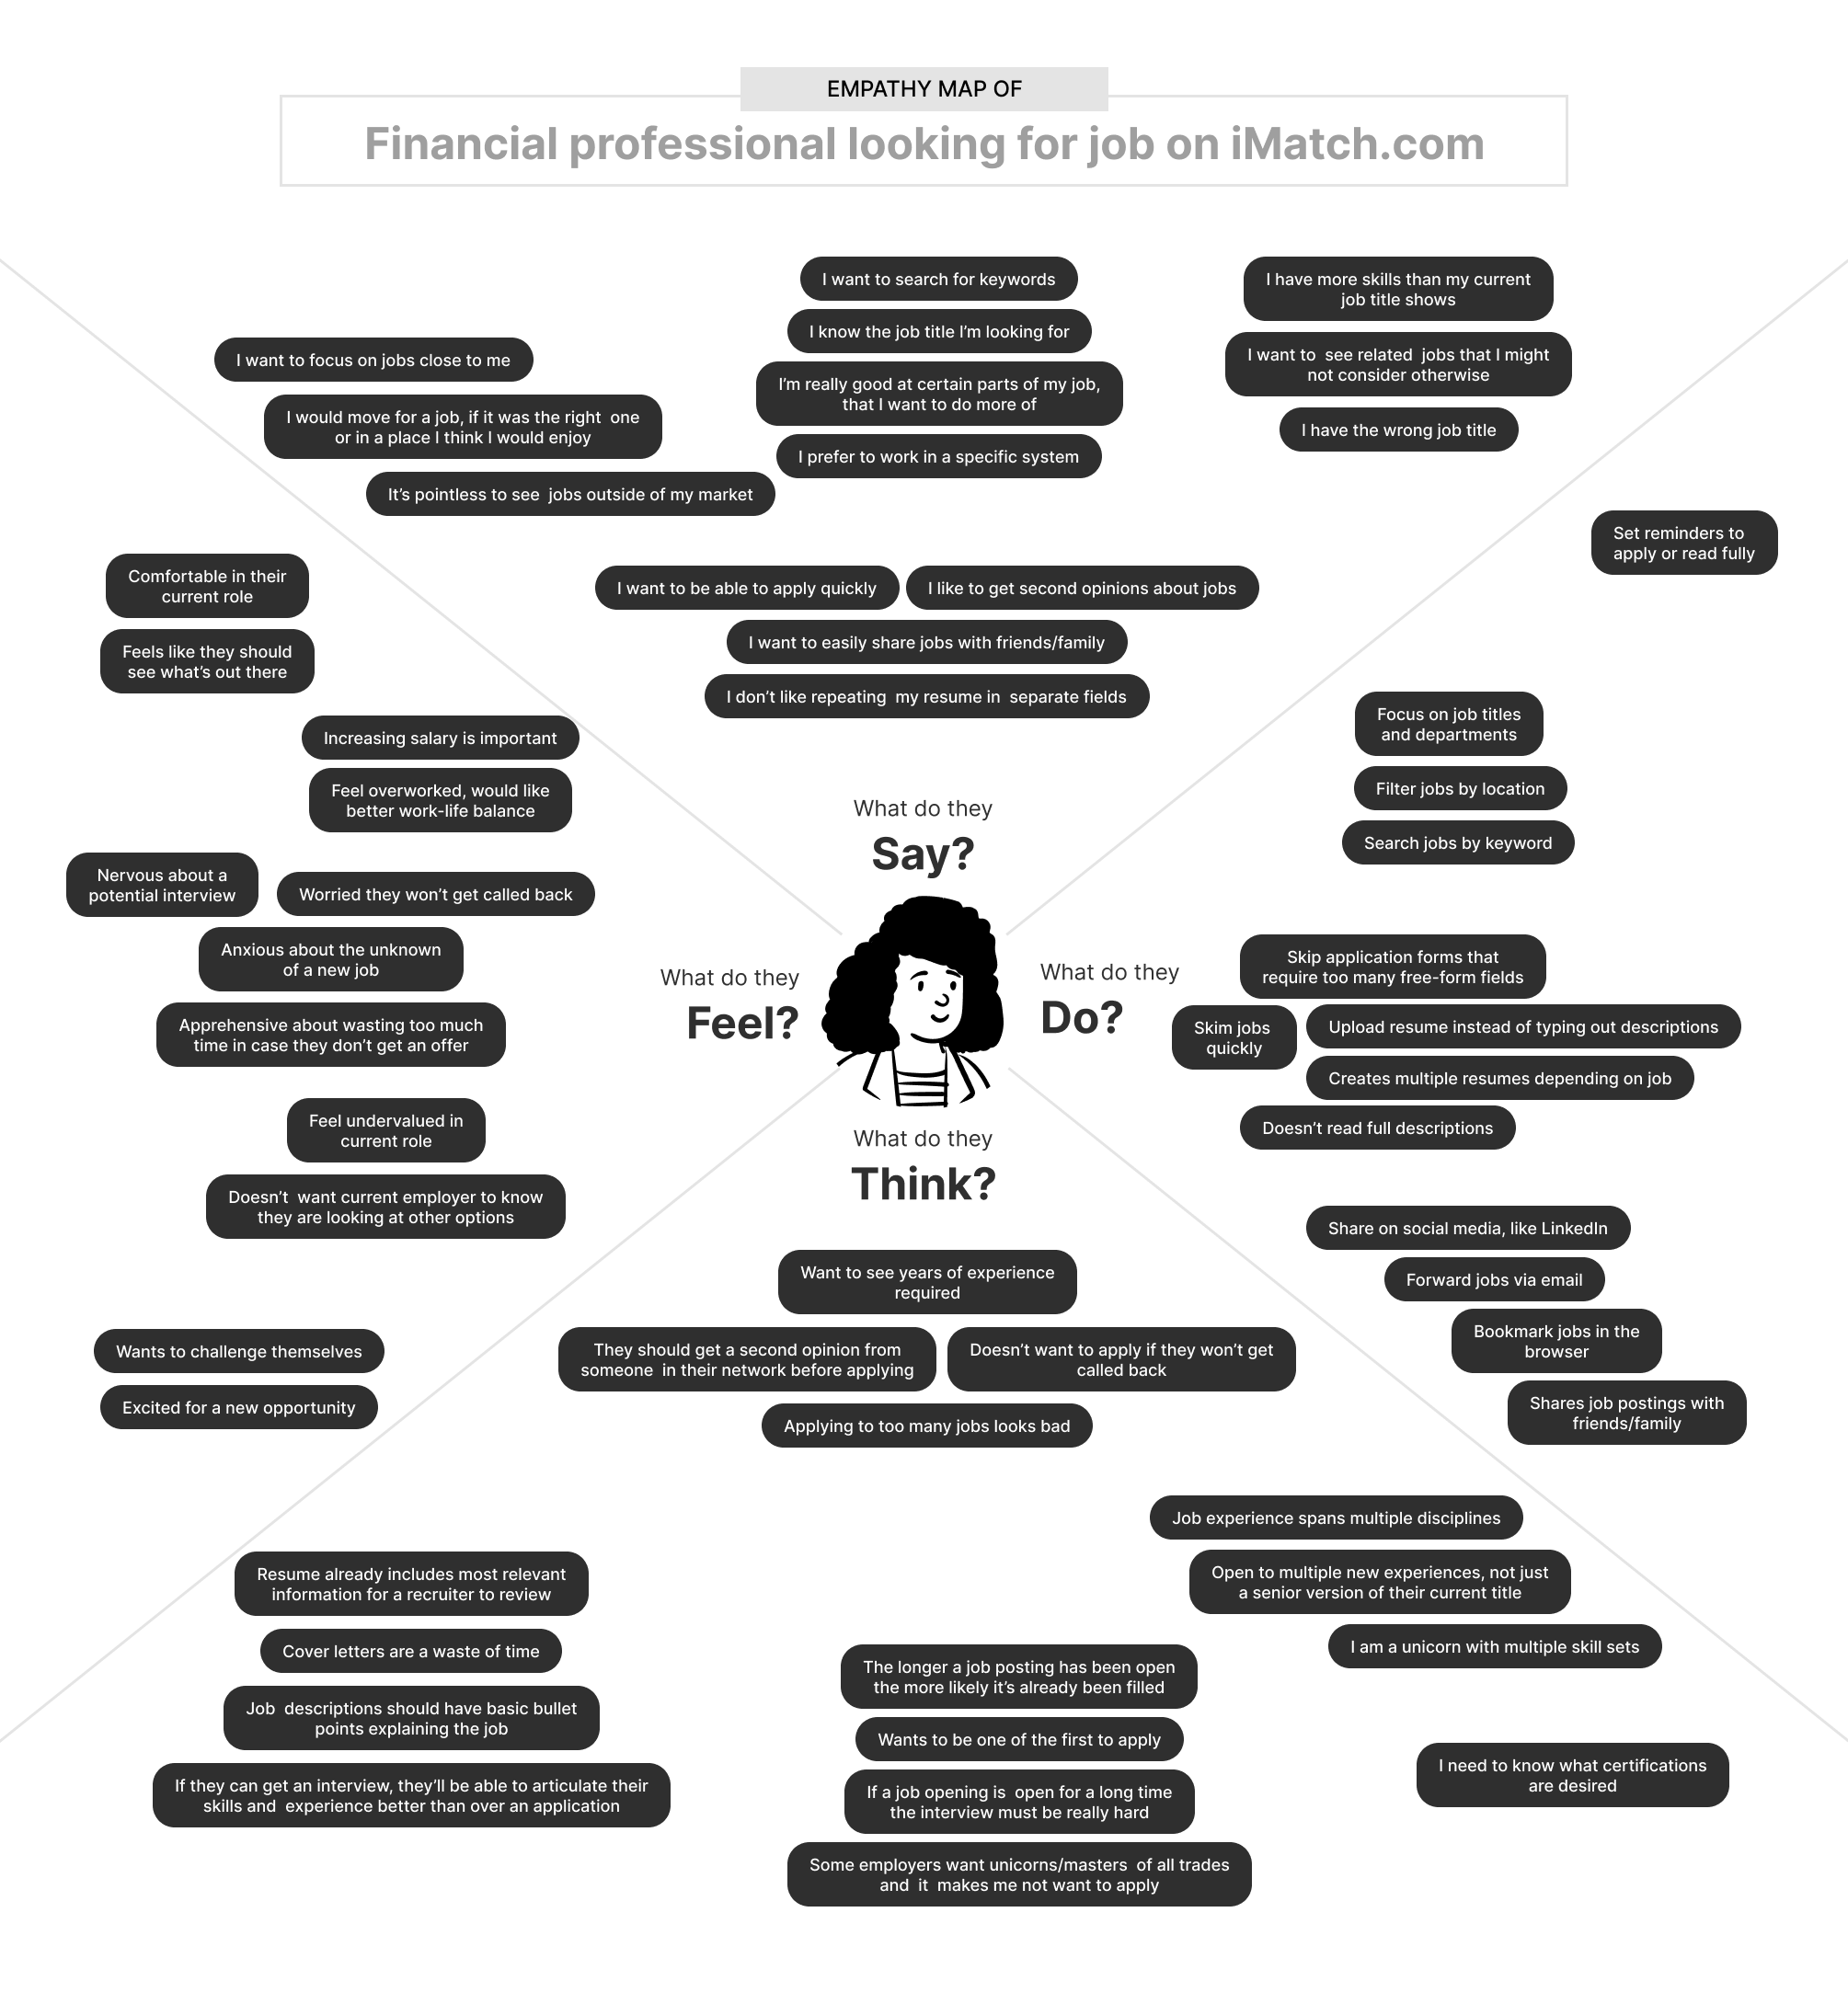 empathy map for iMatch website